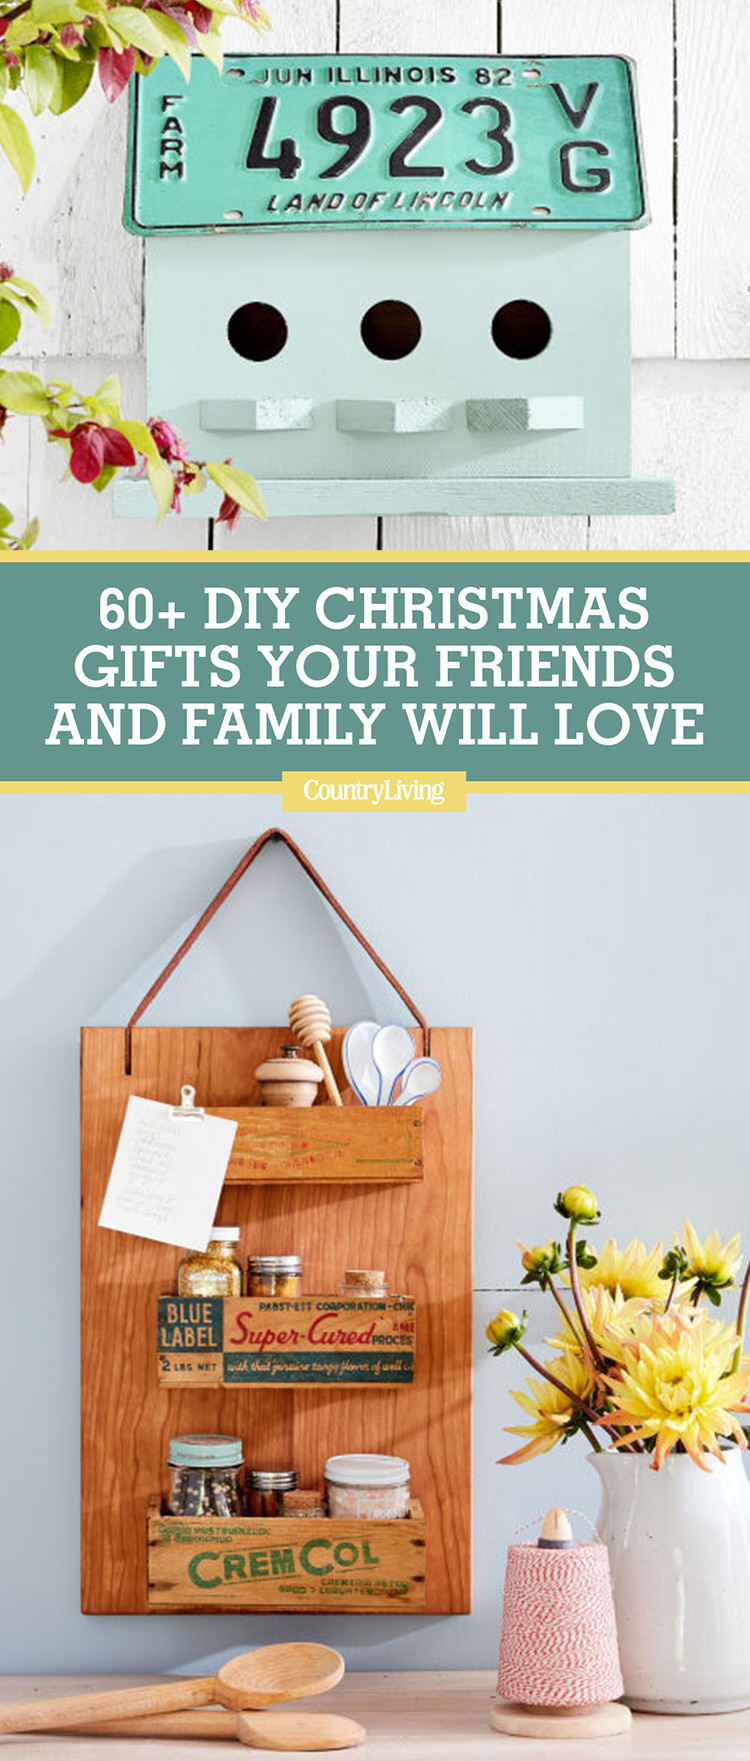 Best ideas about DIY Gift For Family . Save or Pin 60 DIY Homemade Christmas Gifts Craft Ideas for Now.